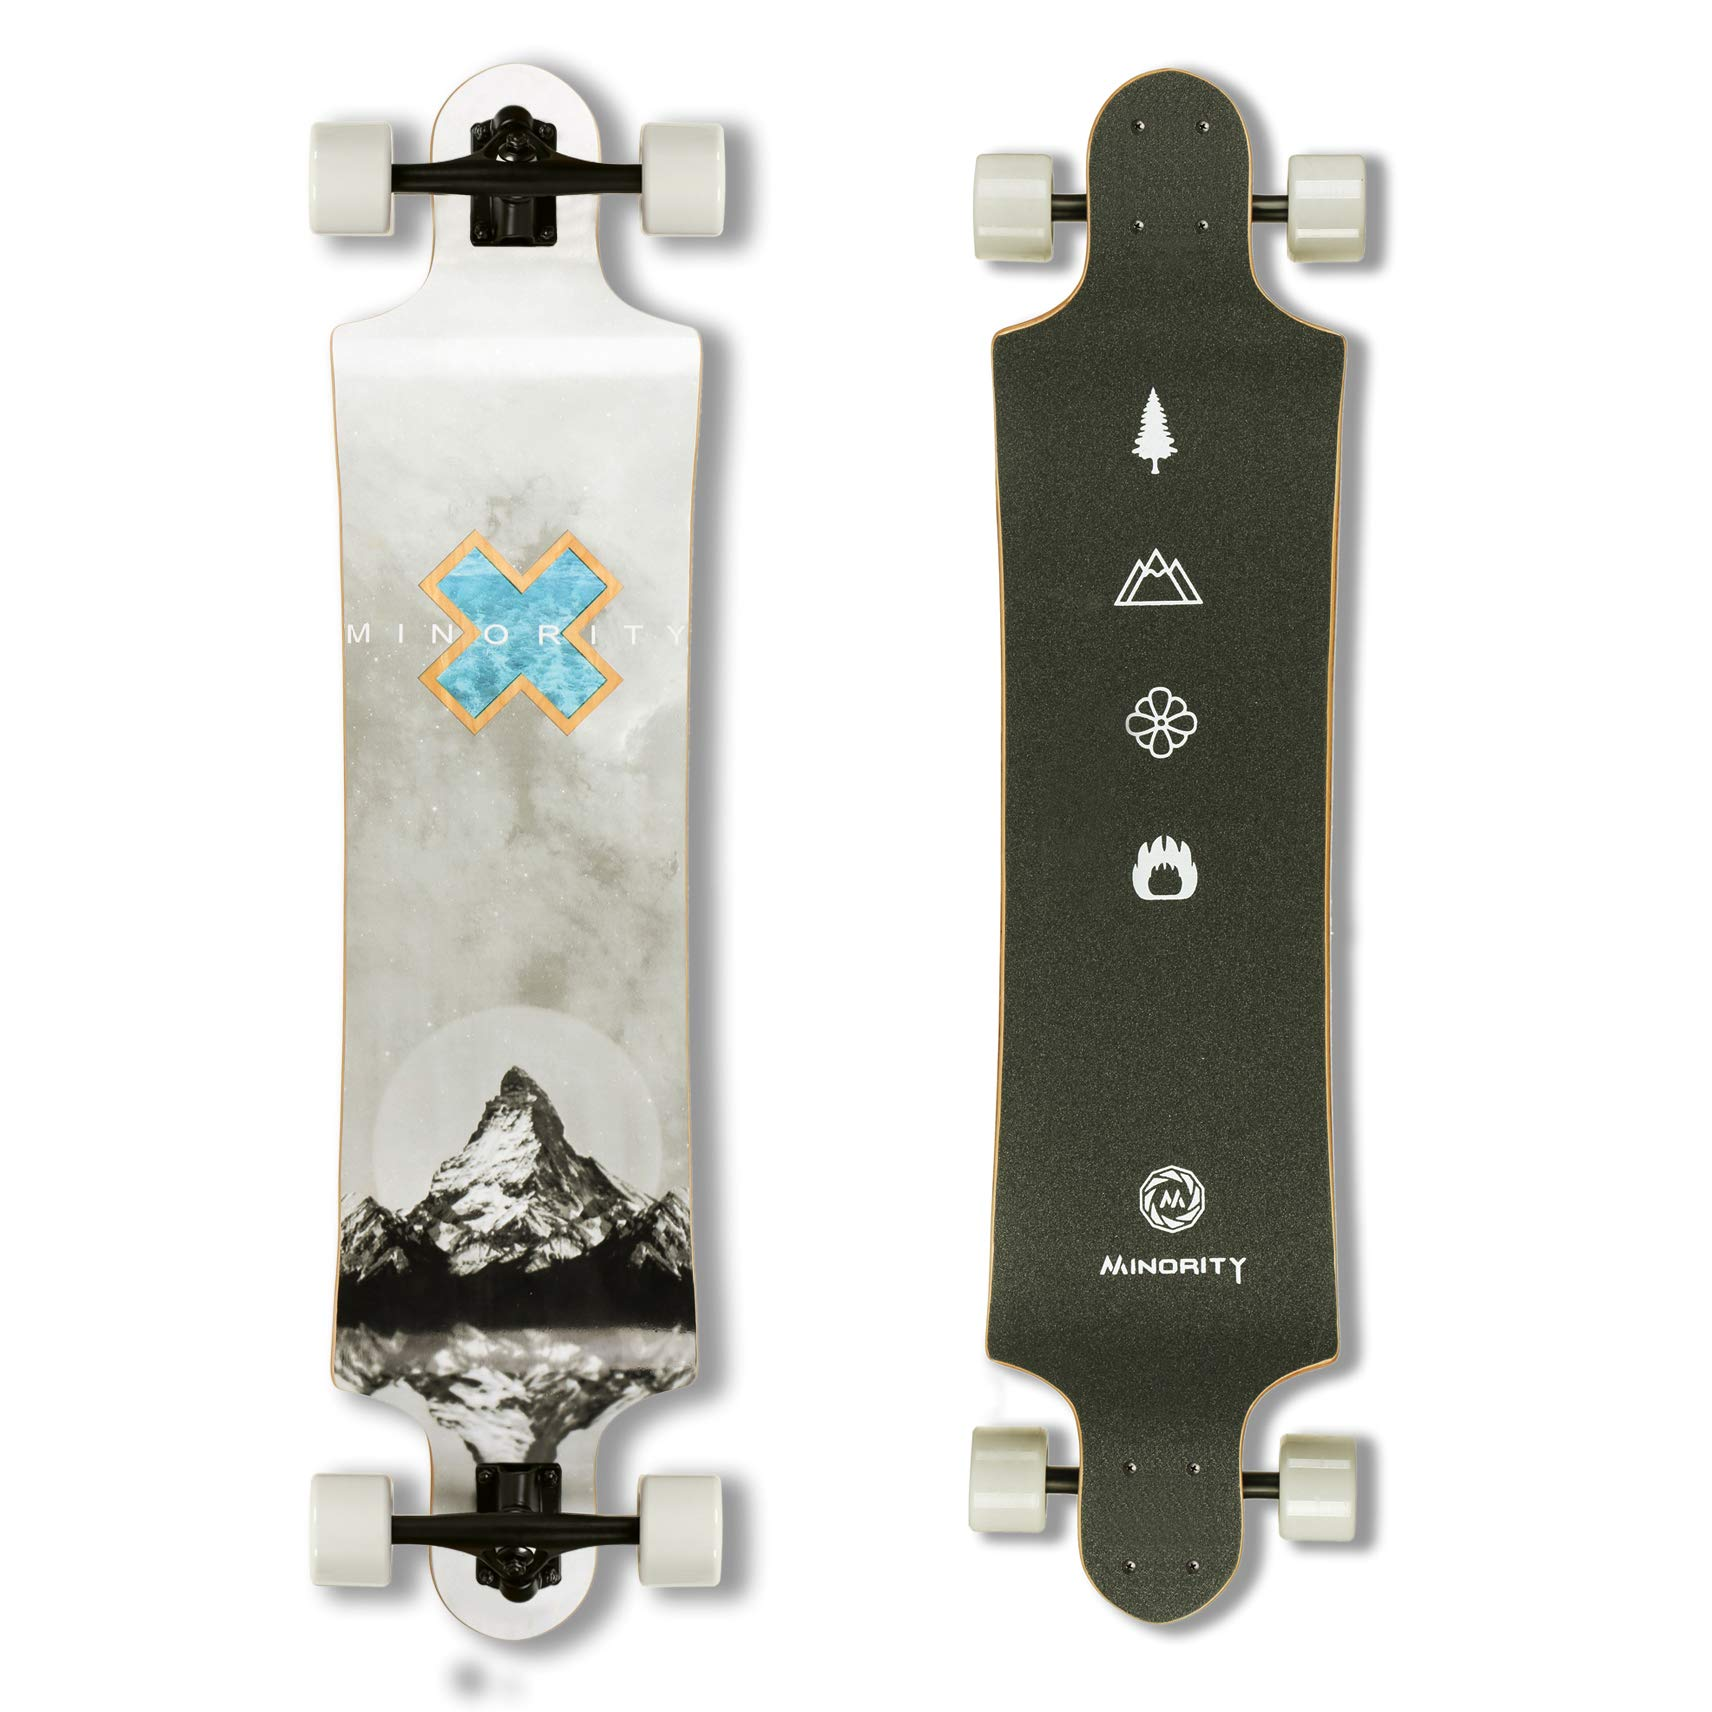 MINORITY Downhill Maple Longboard 40-inch Drop Deck